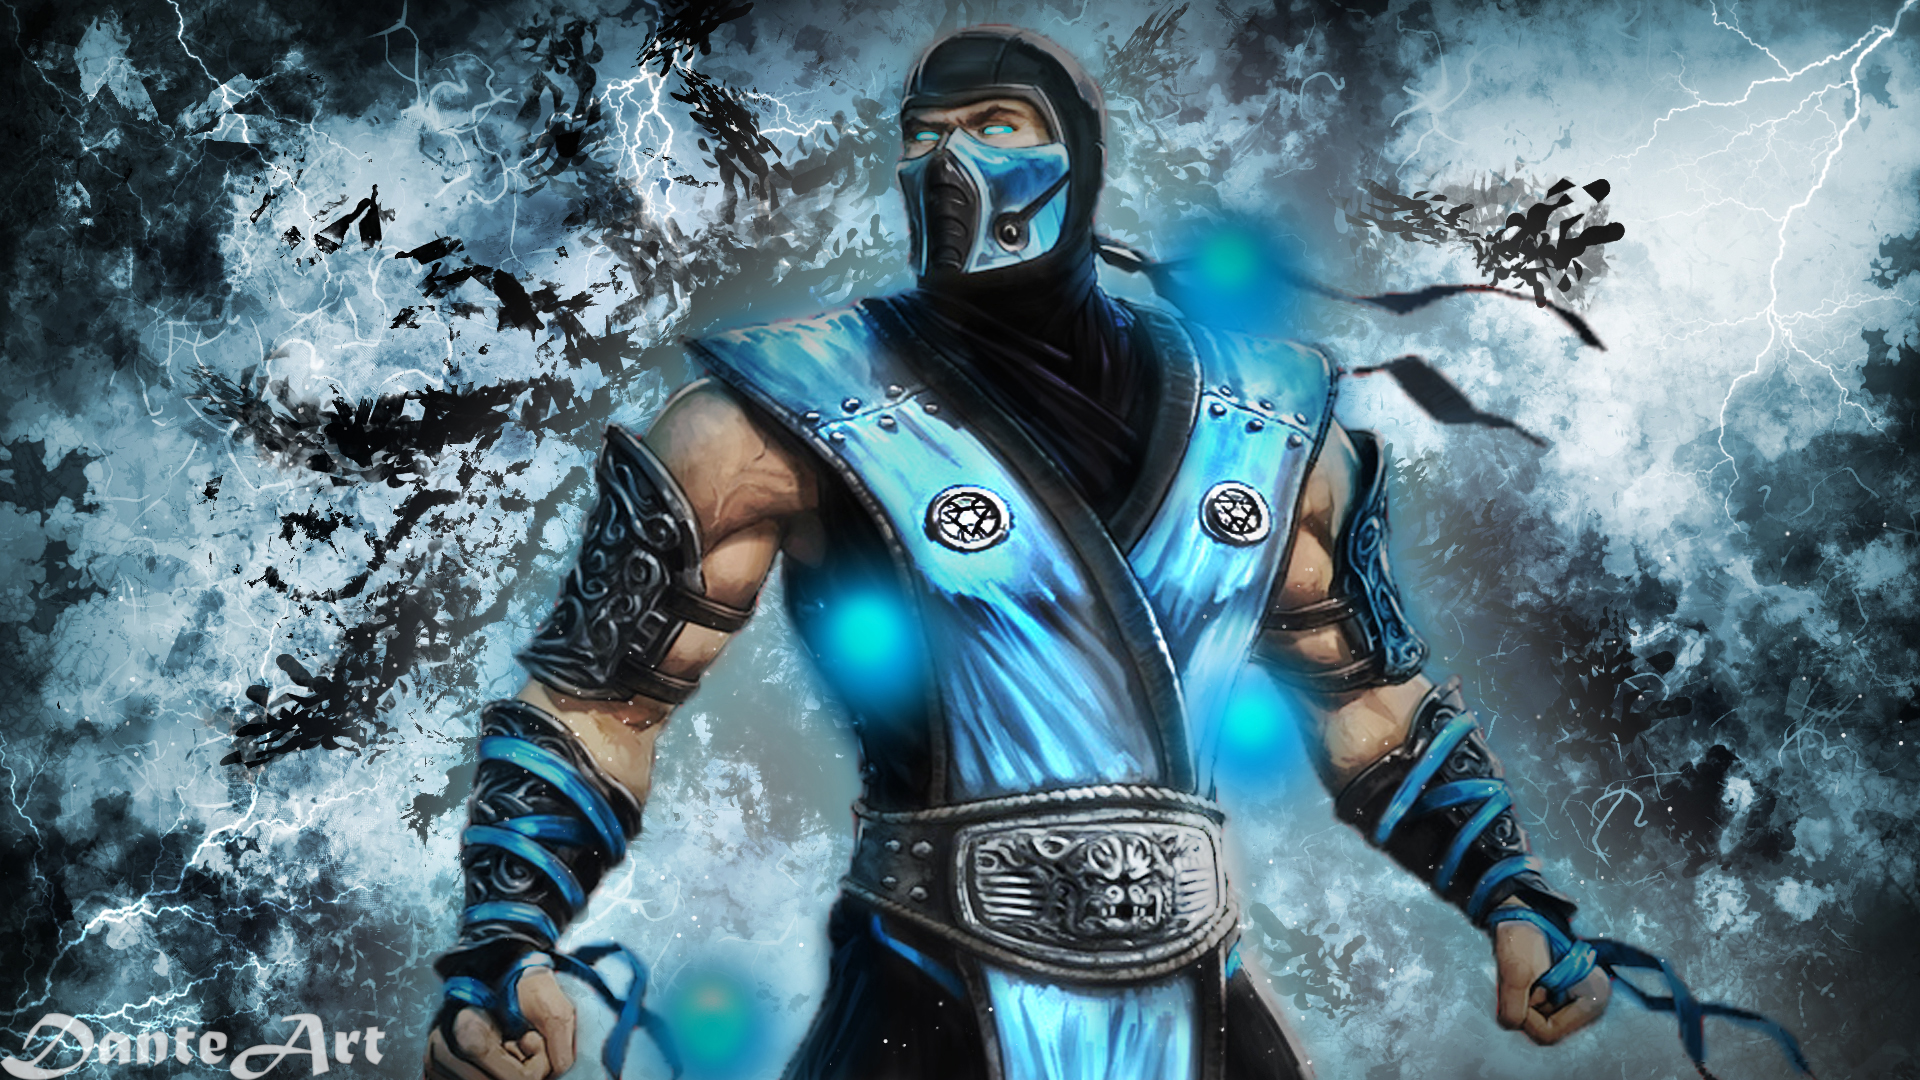 Mortal Kombat Wallpaper High Definition 7597 Wallpaper Cool 1920x1080